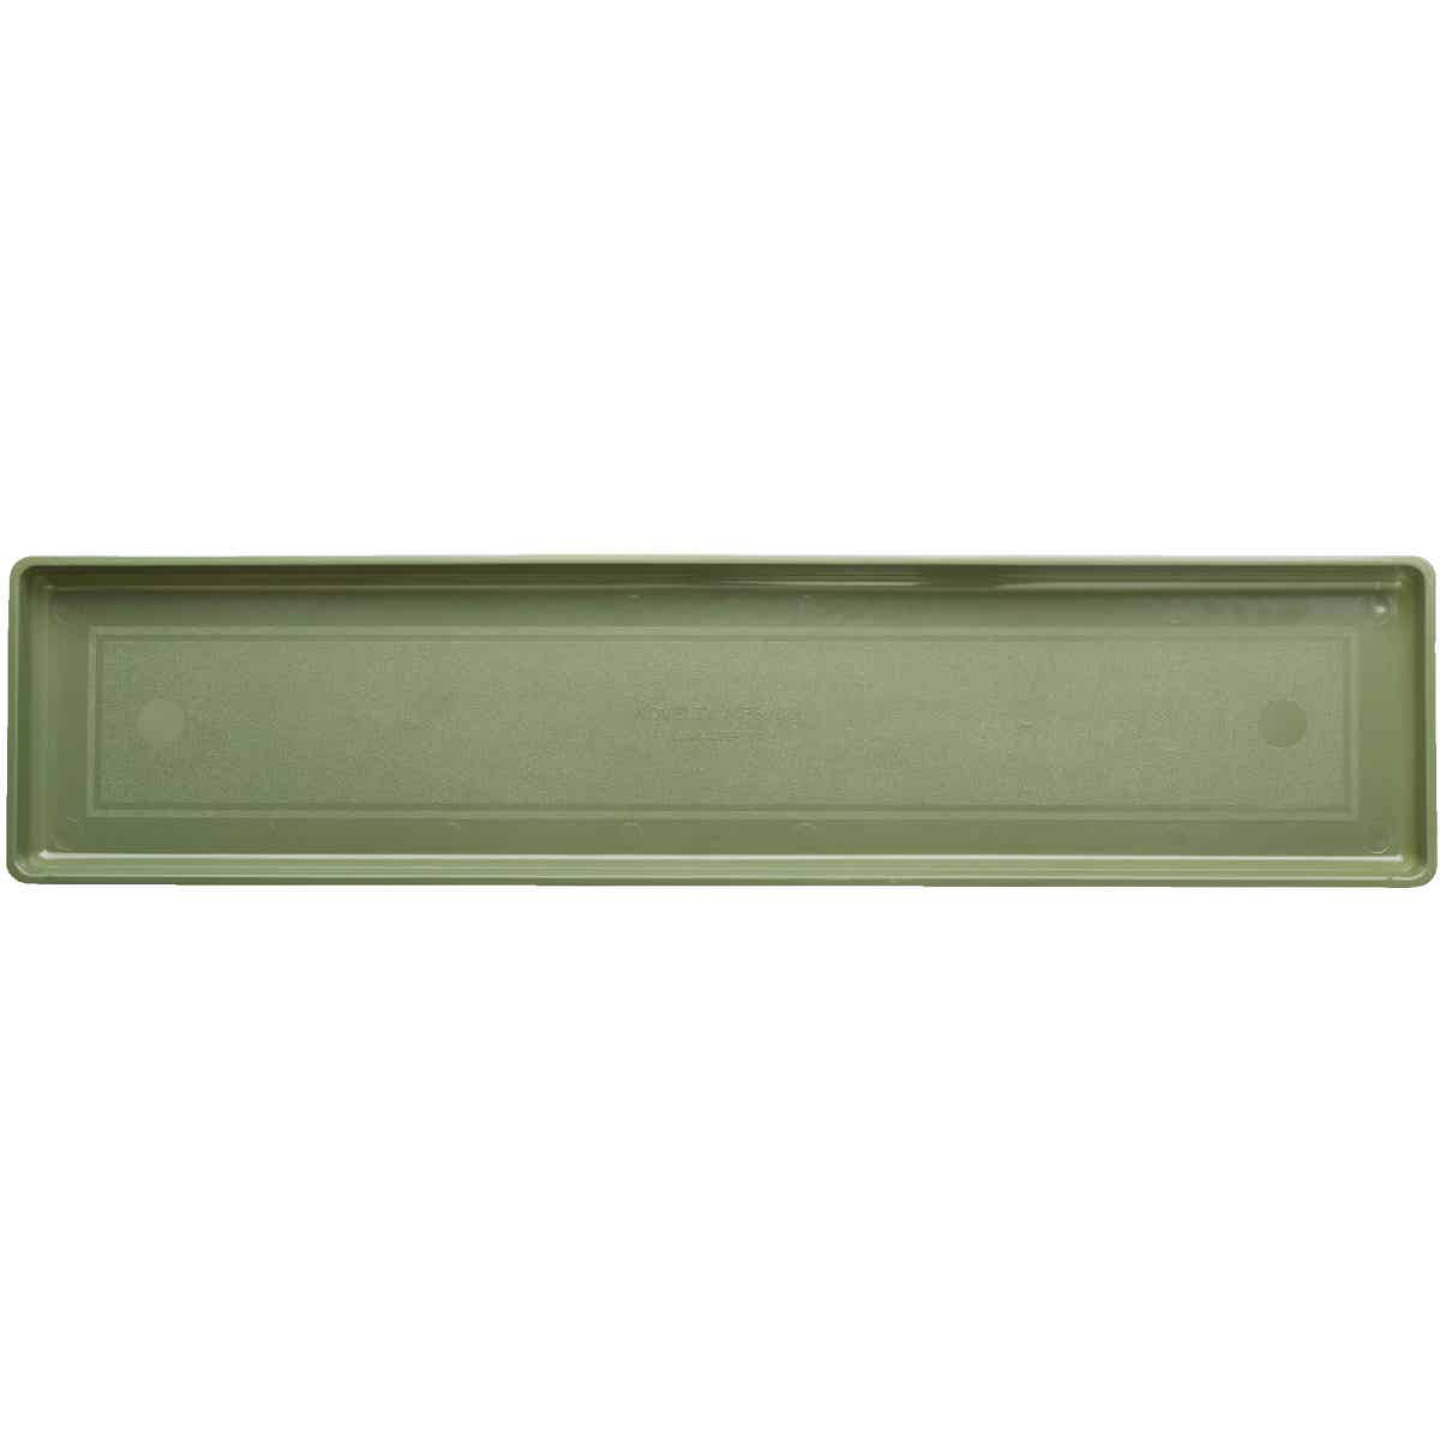 Novelty 32-3/8 In. Sage Plastic Flower Box Tray Image 1